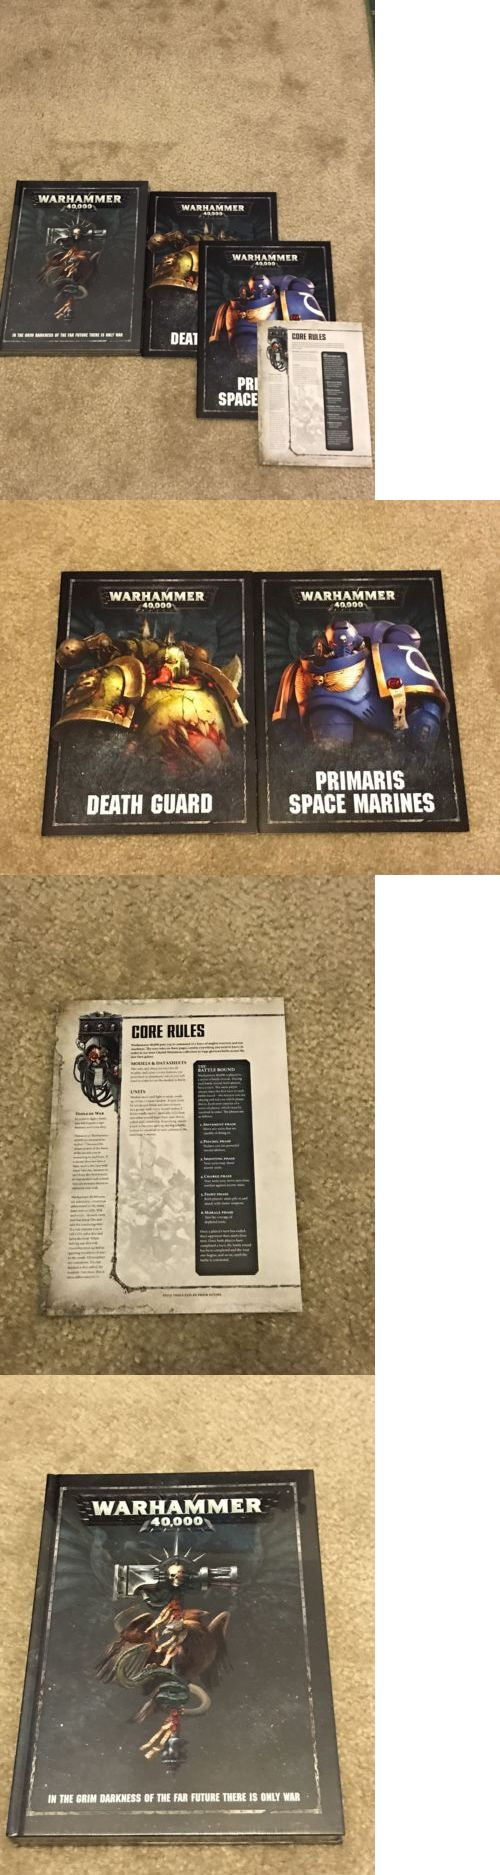 40K Rulebooks and Publications 90944: Warhammer 40K Dark Imperium Hardback Rulebook 8Th Edition + Extras -> BUY IT NOW ONLY: $33.5 on eBay!